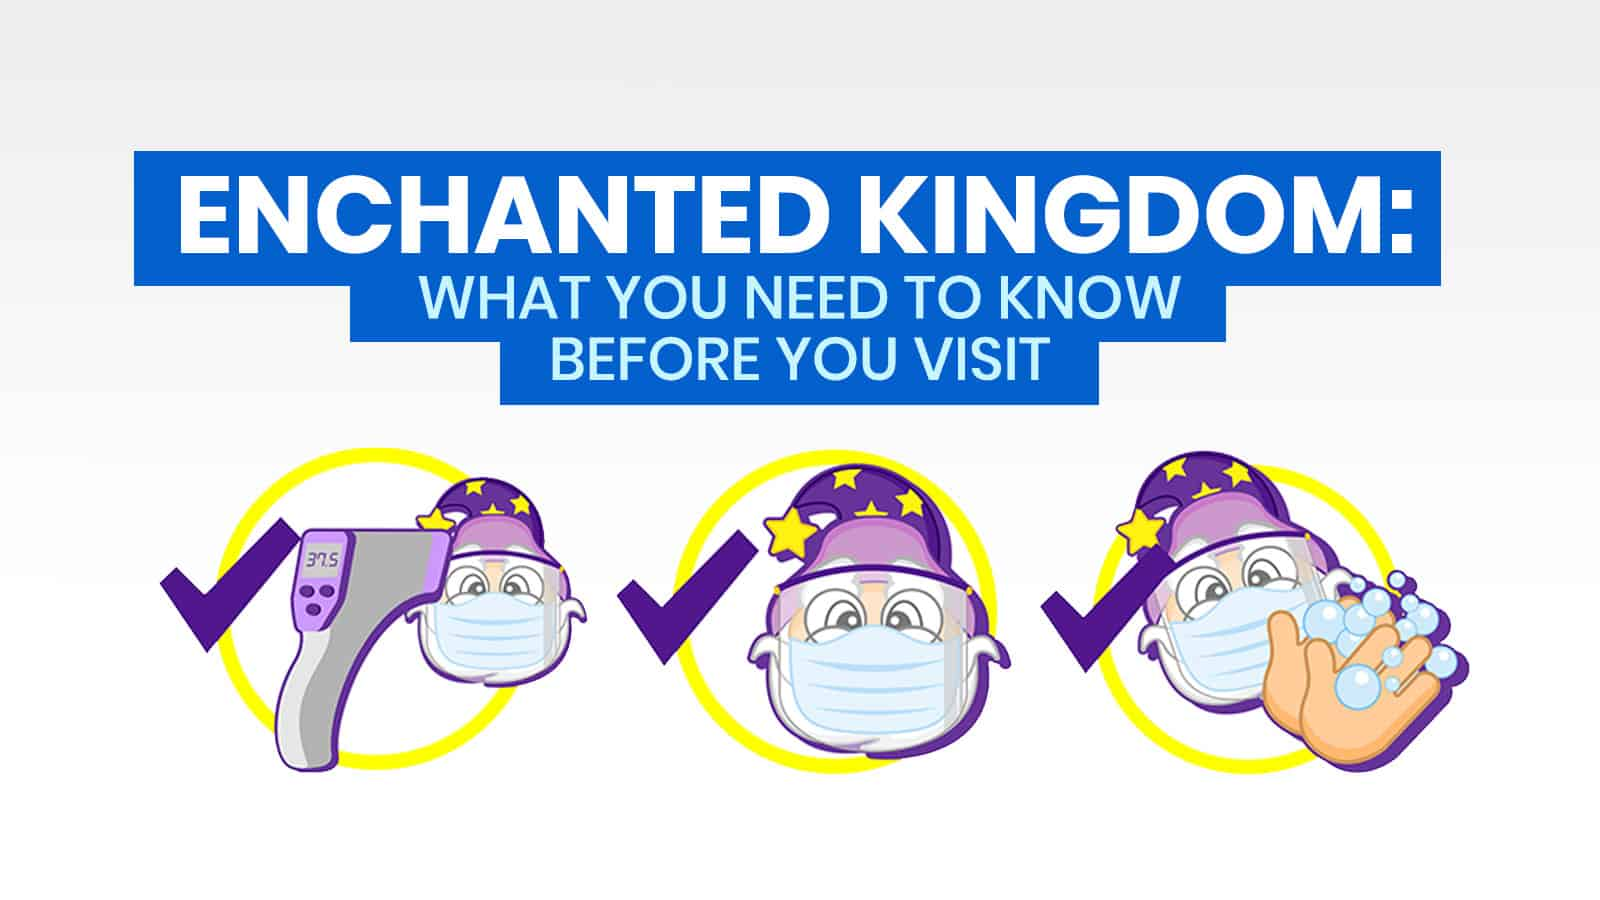 ENCHANTED KINGDOM NEW NORMAL: What You Should Know Before Visiting